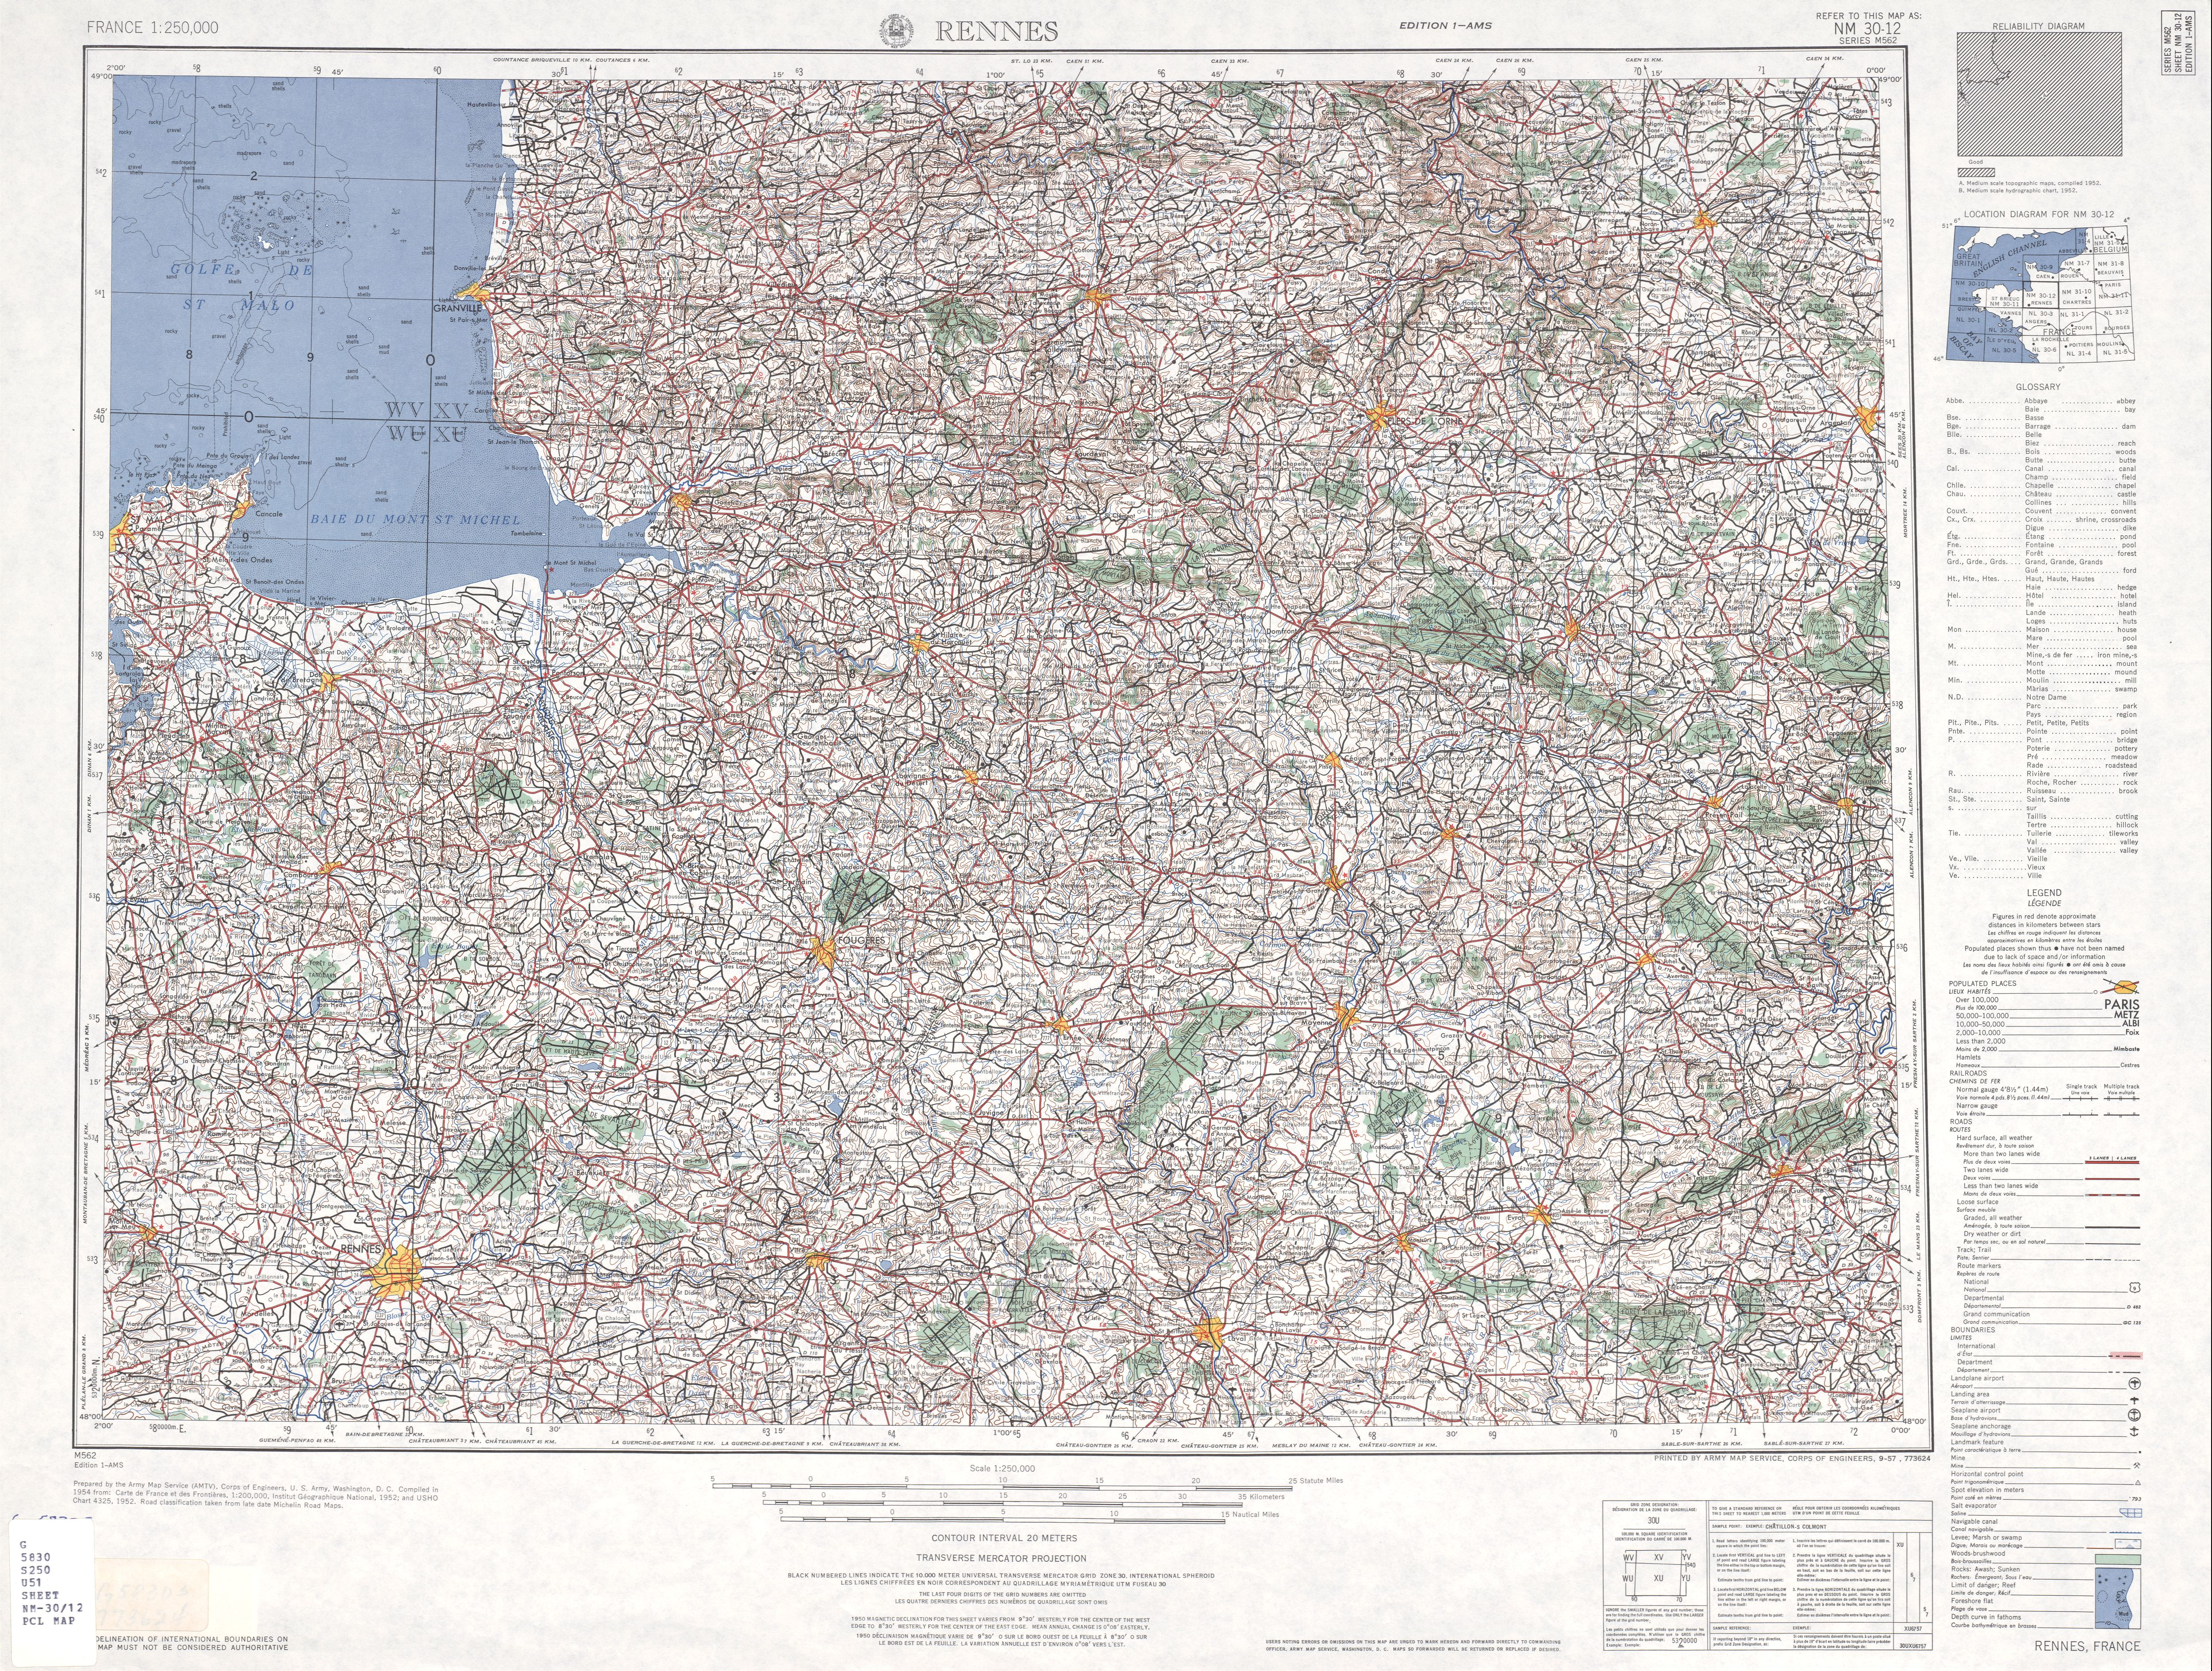 Map Of France Rennes.France Ams Topographic Maps Perry Castaneda Map Collection Ut